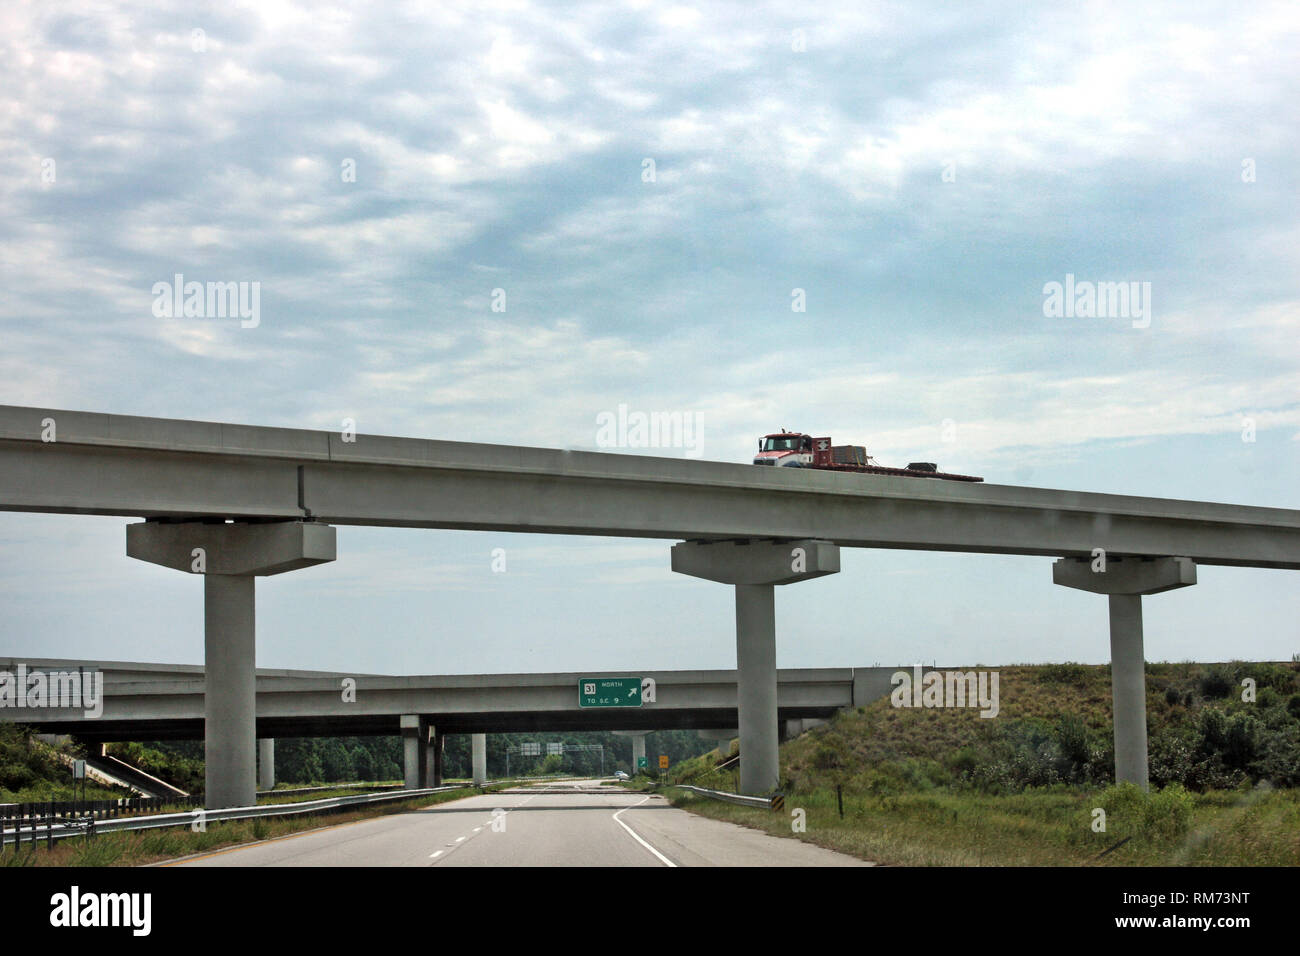 Overpasses over highway in South Carolina - Stock Image